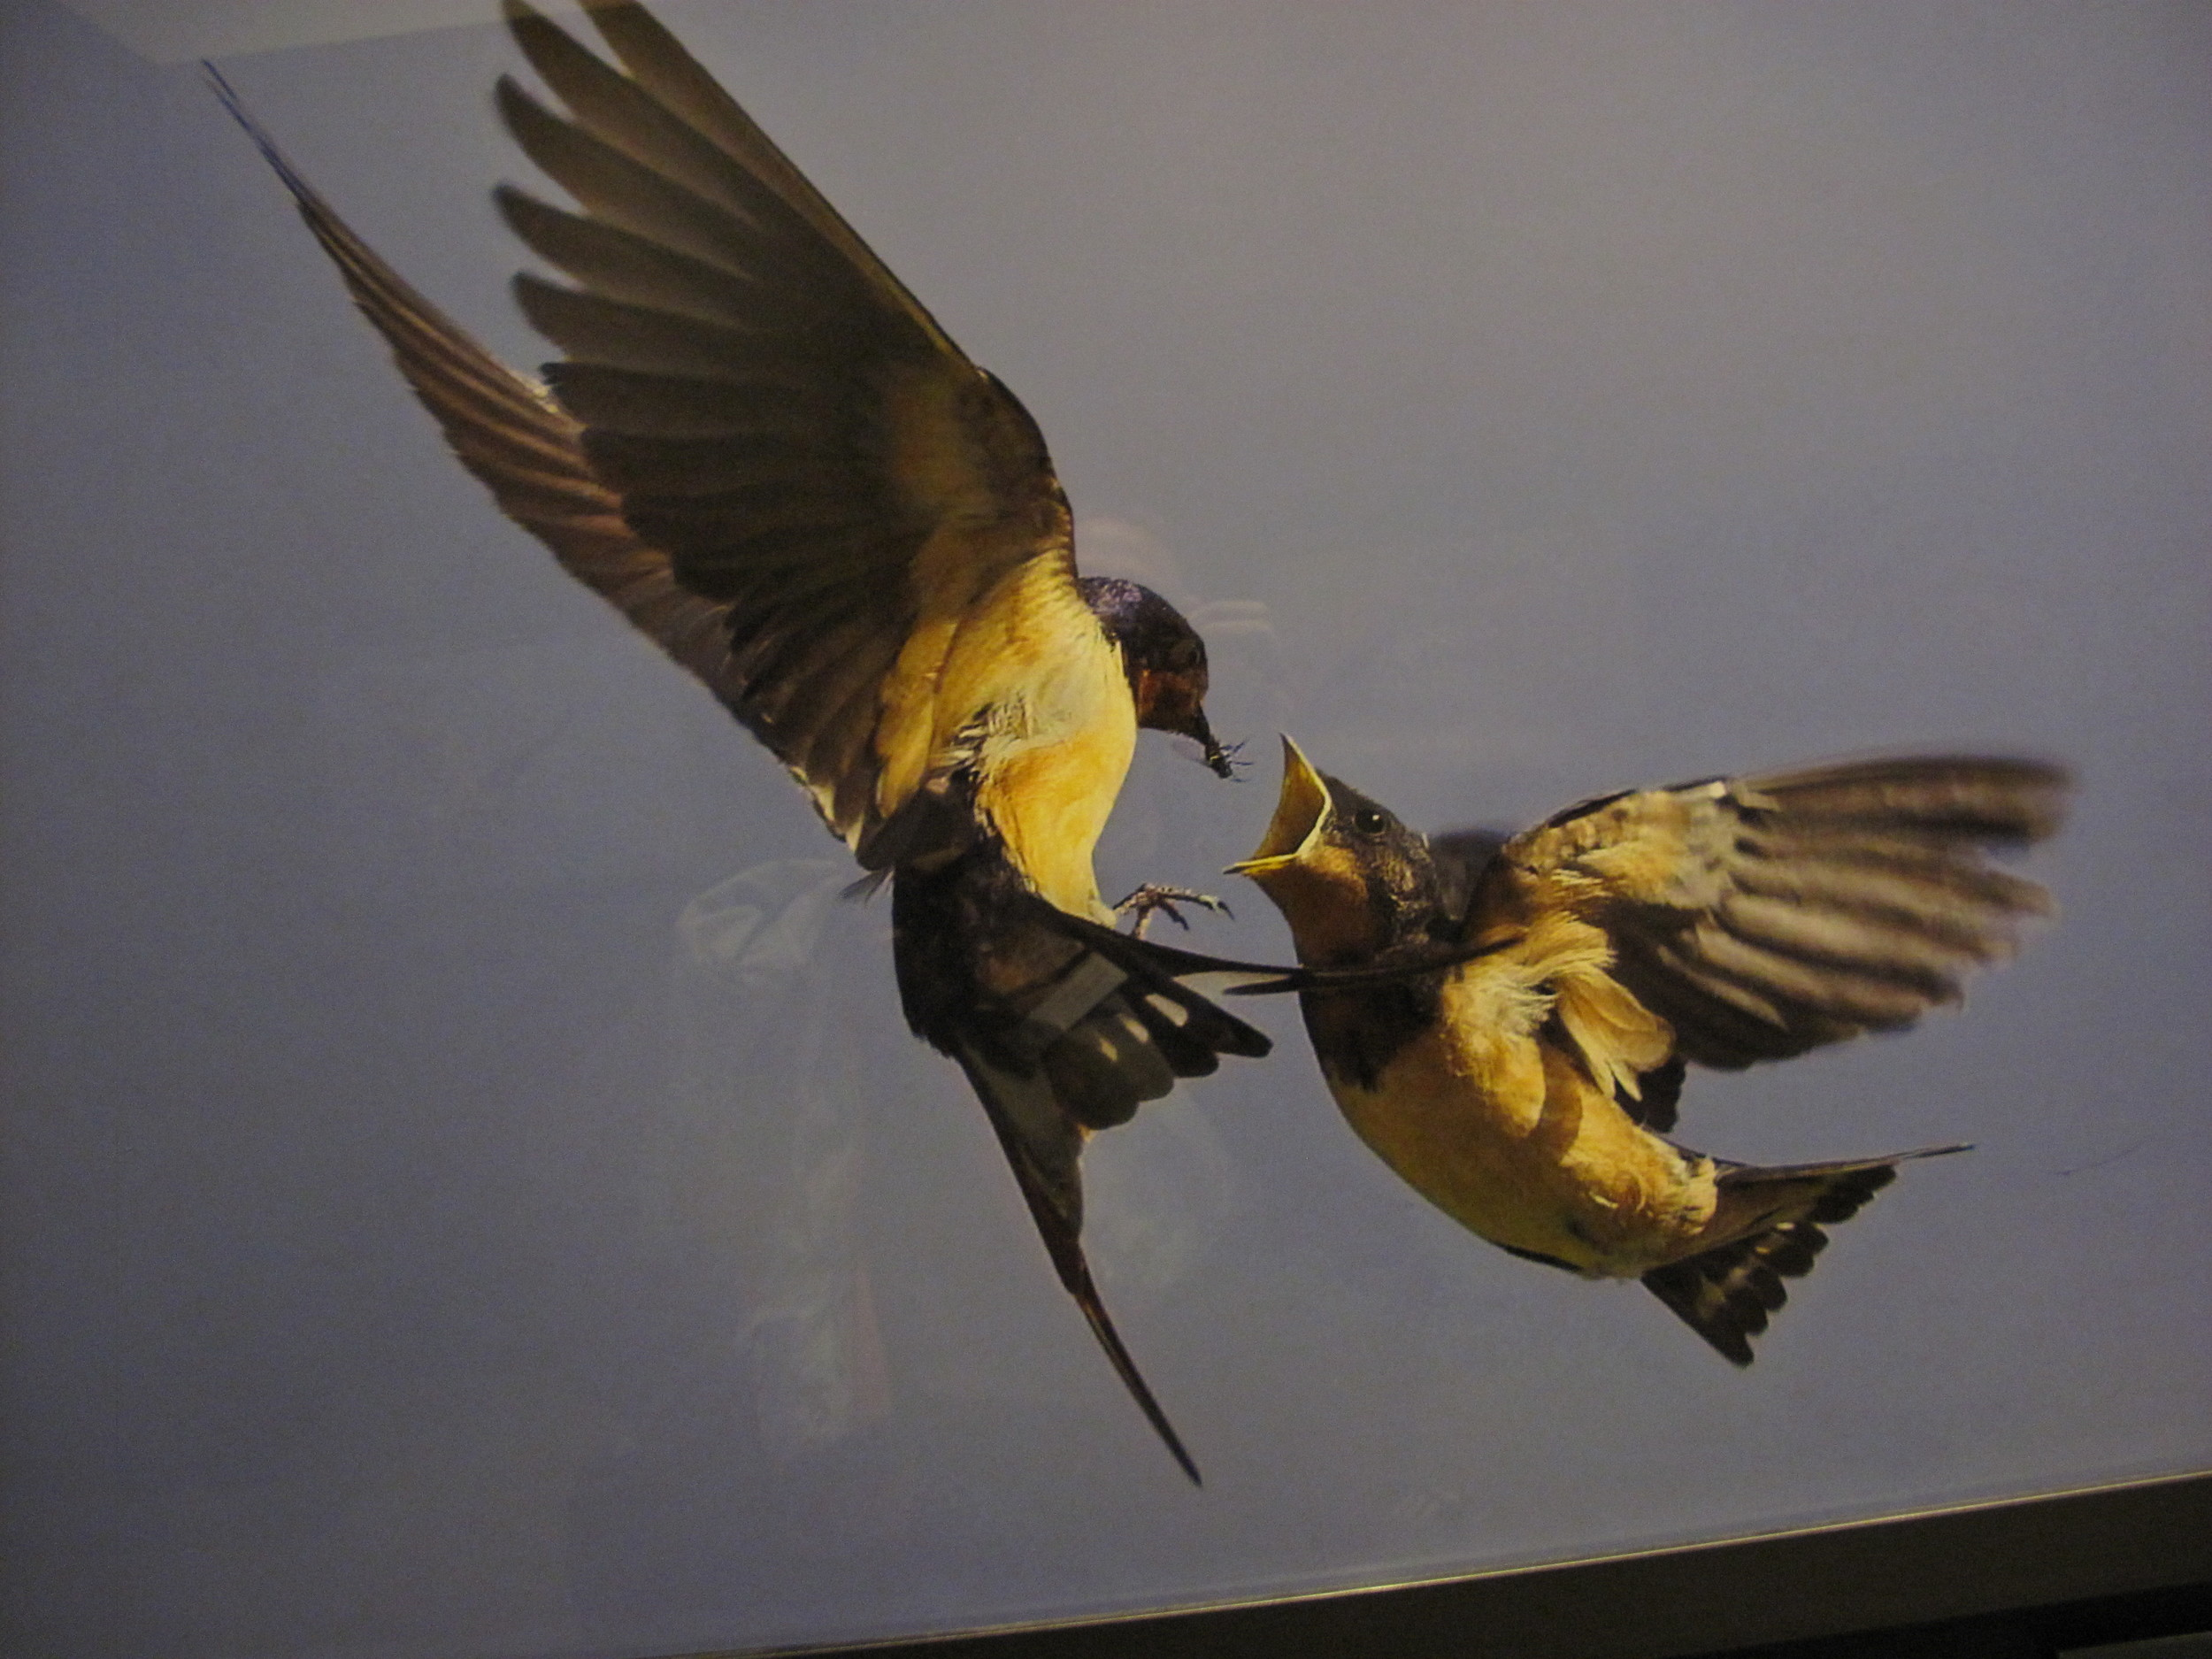 Part of a superb photo exhibit called On Feathered Wings, this extraordinary photo of a barn swallow feeding a fly to a fledgling was shot by David G. Hemmings in Canada.